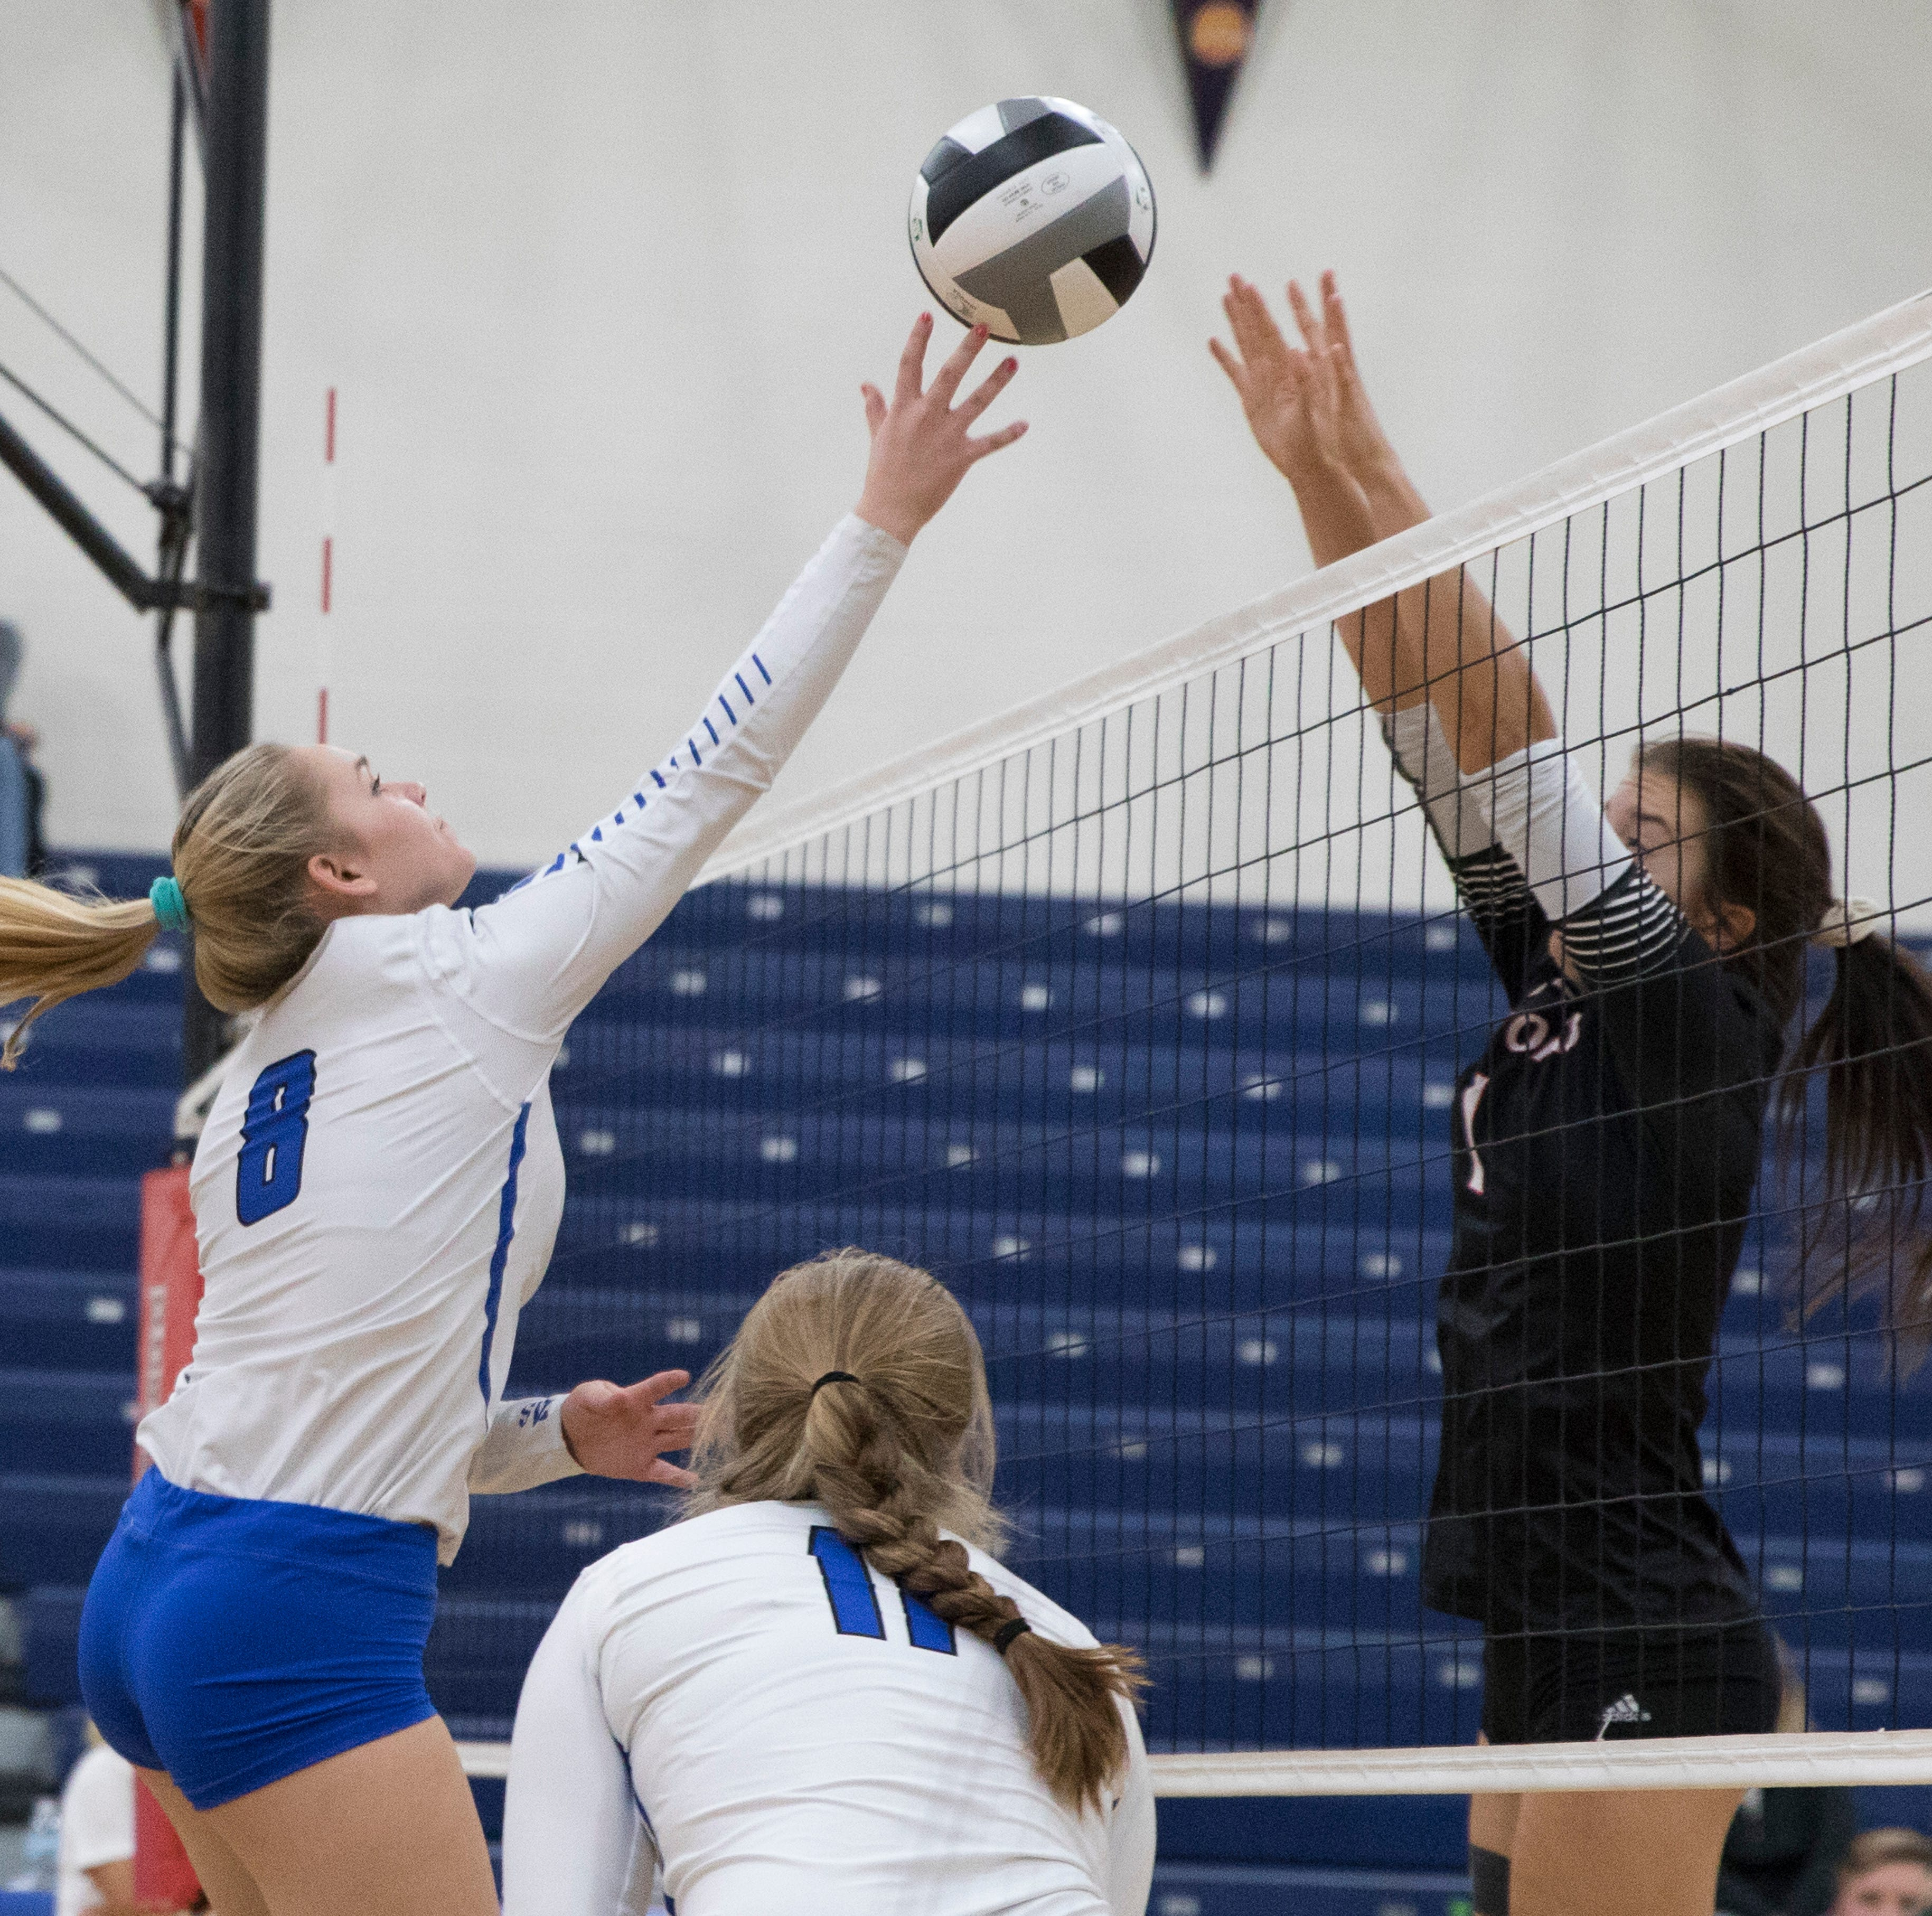 OHIO HS VOLLEYBALL: Southeastern defeats Oak Hill 3-0, advances to sectional final